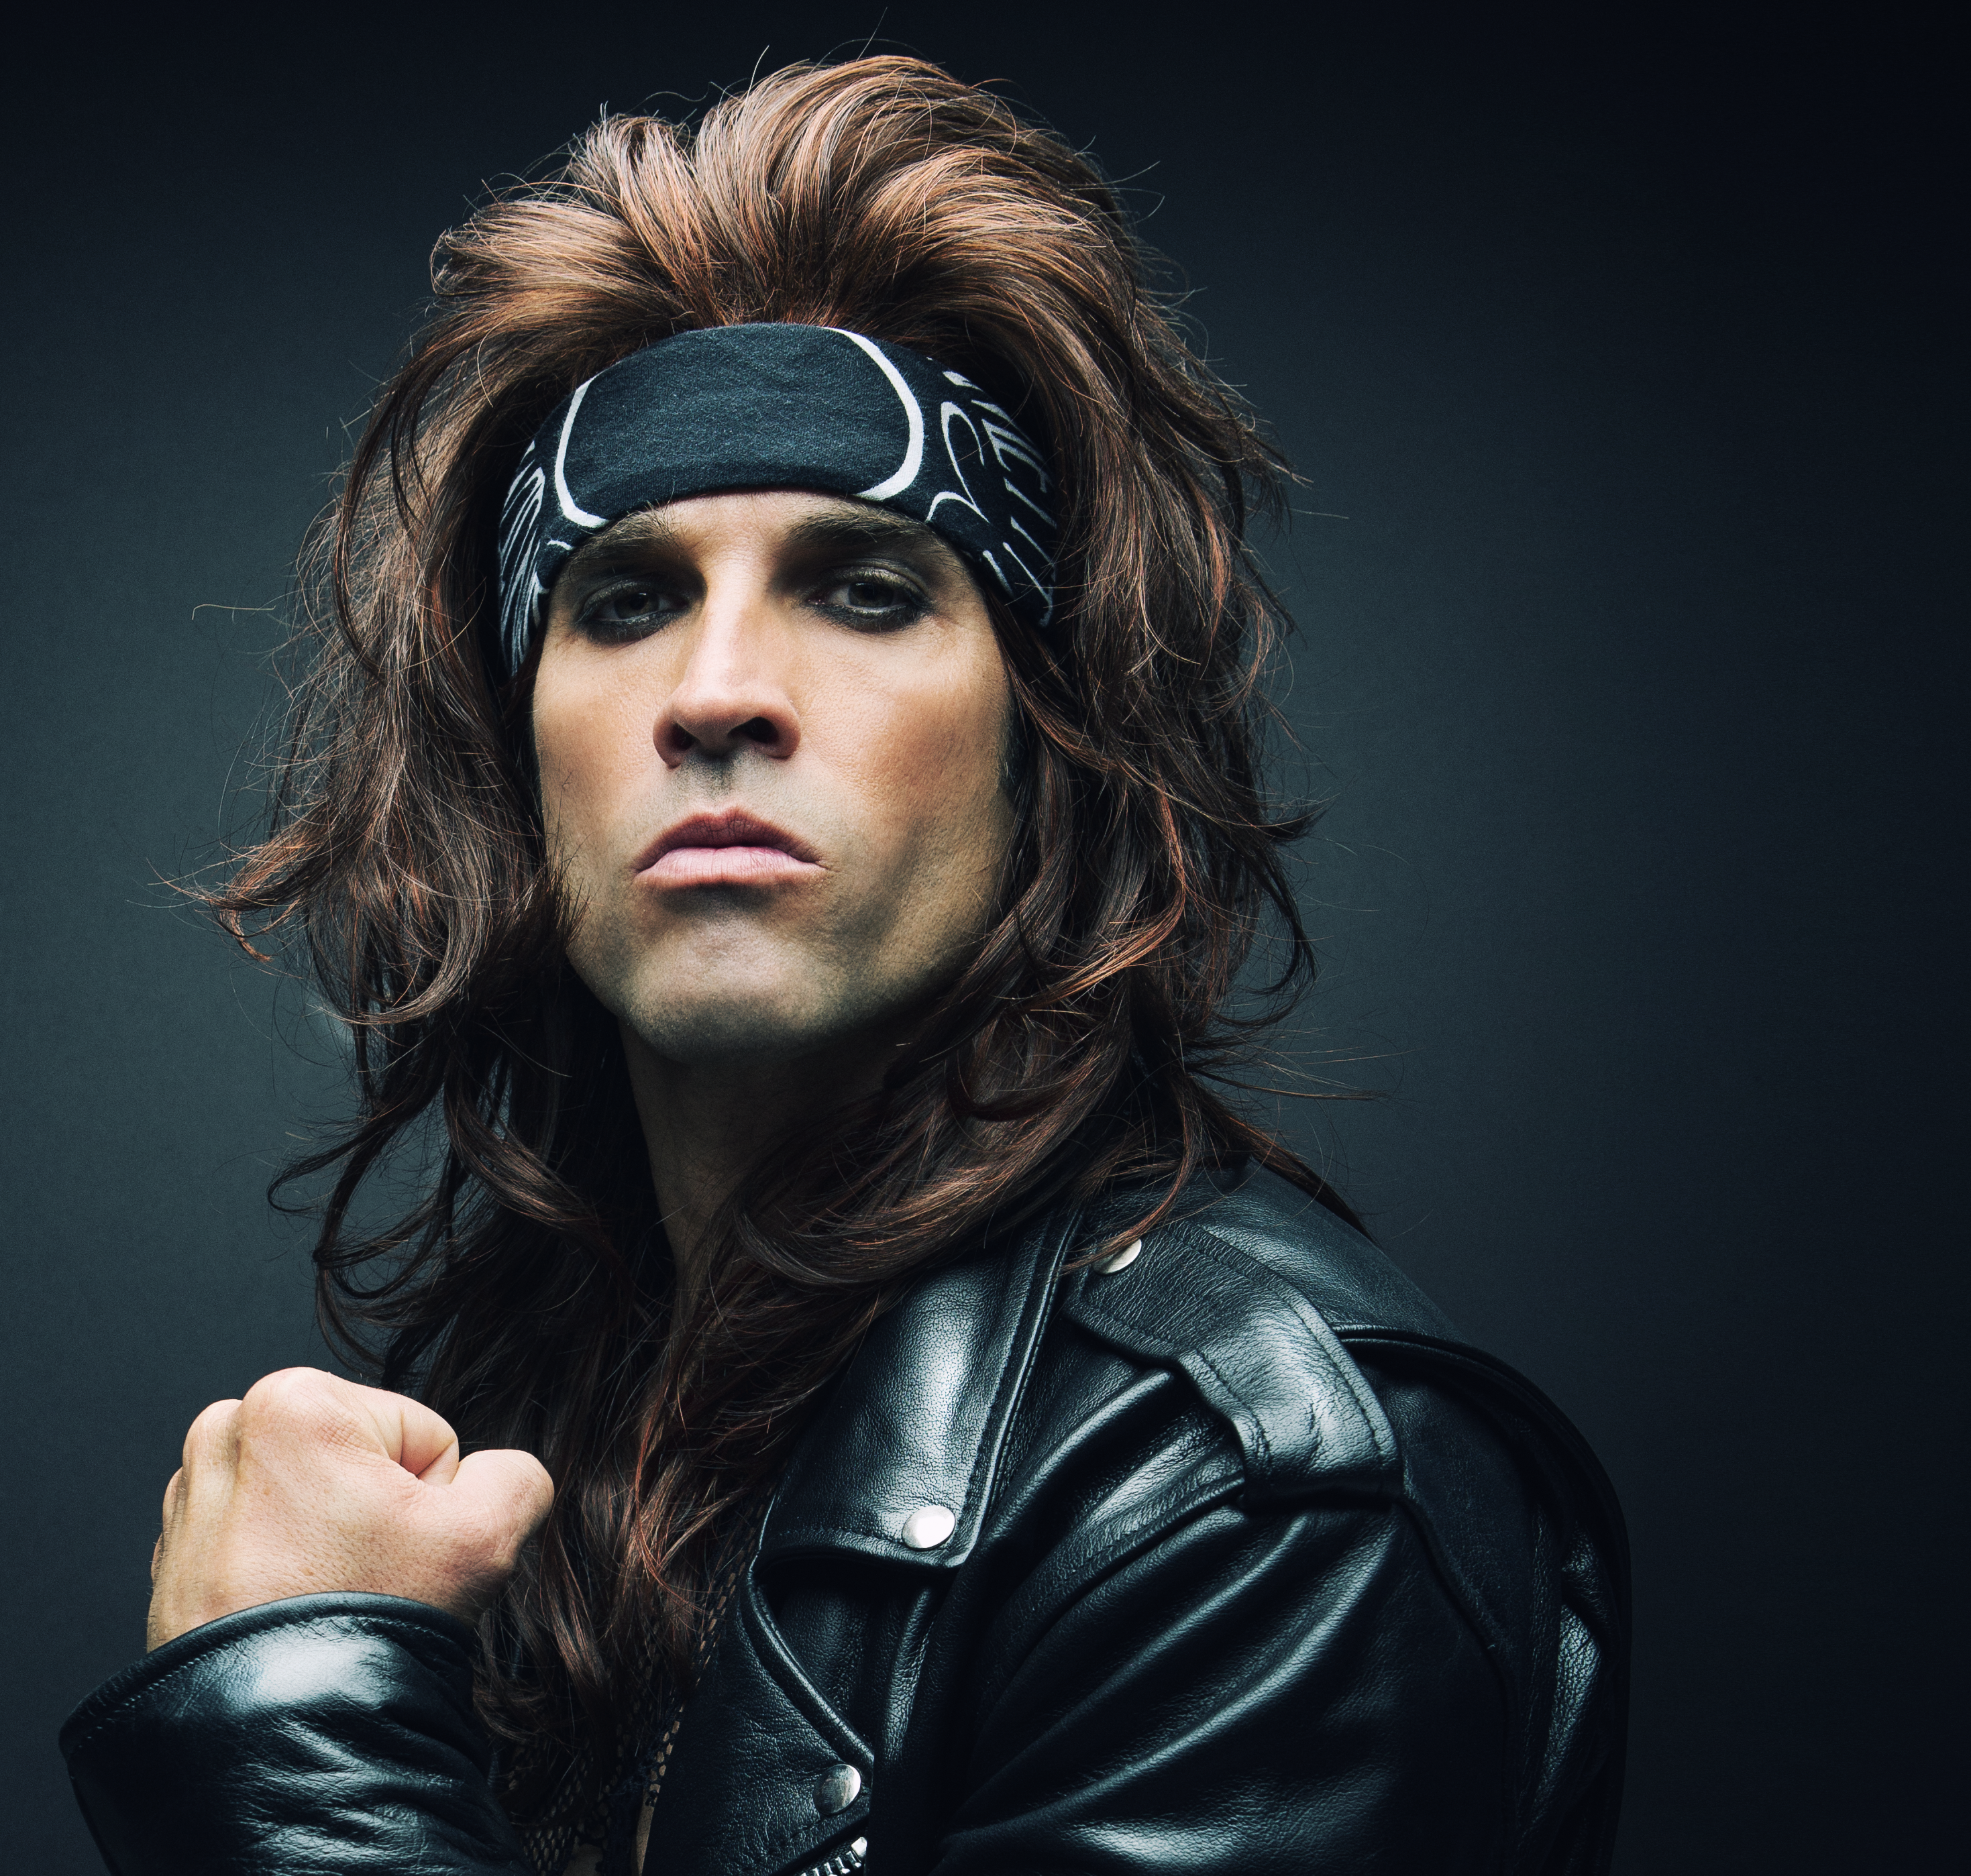 On The Line with Satchel of Steel Panther